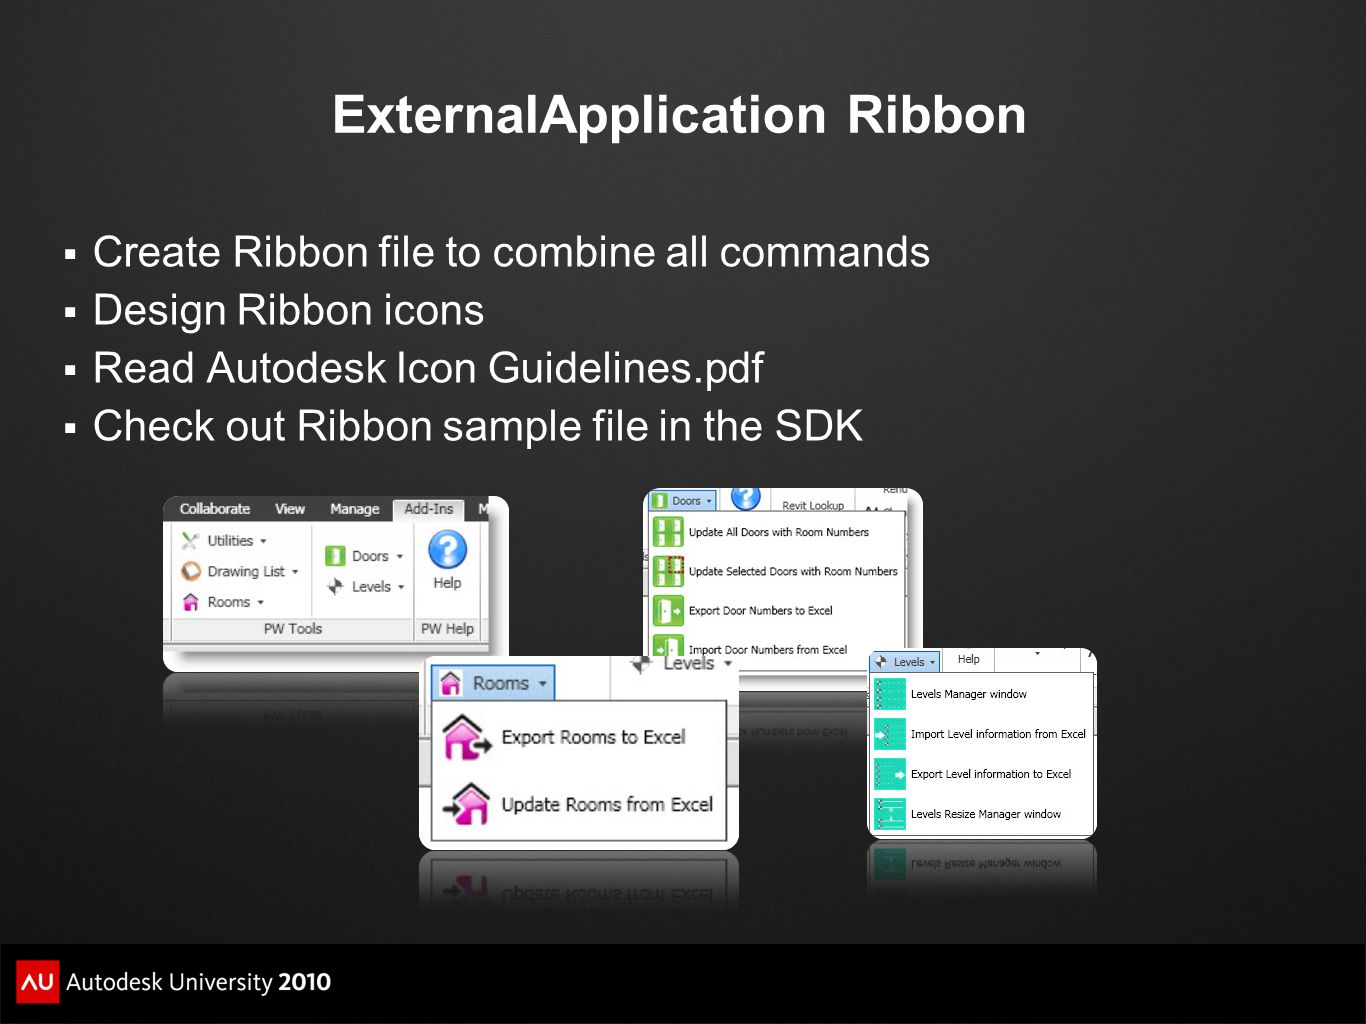 ExternalApplication Ribbon